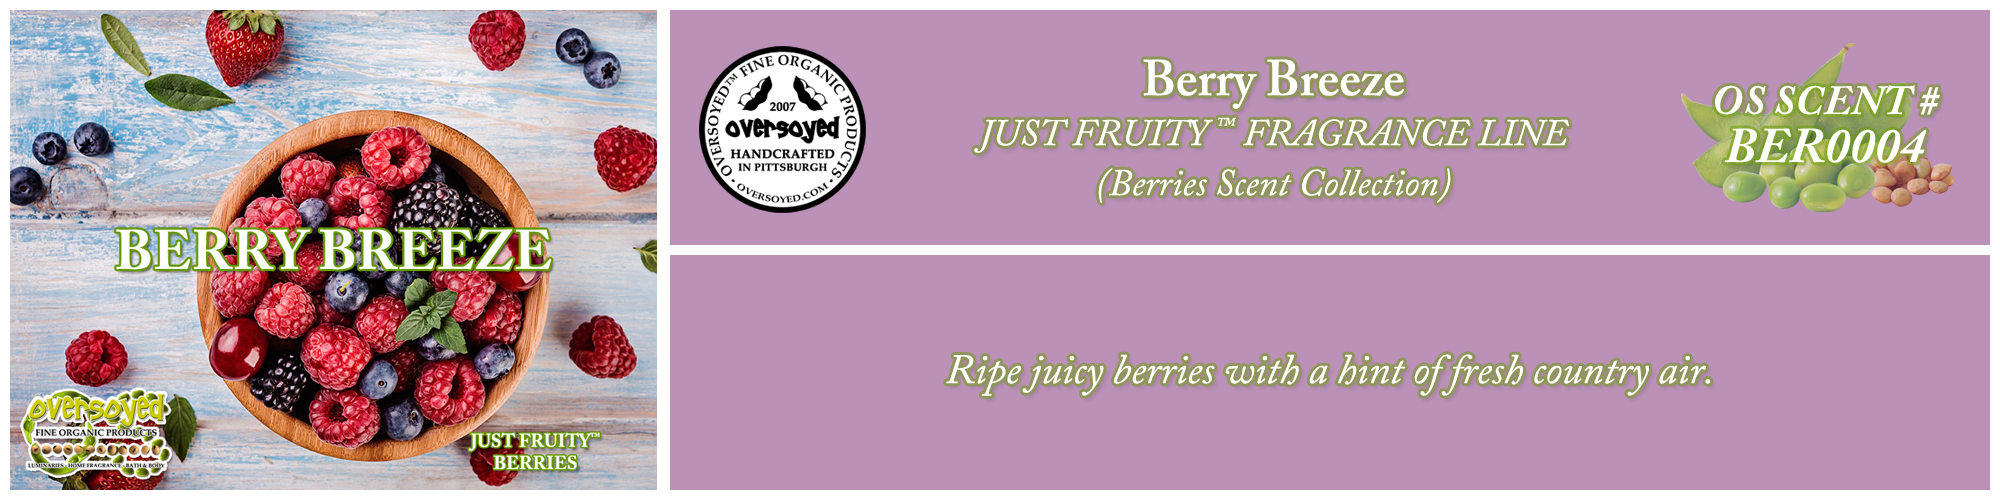 Berry Breeze Handcrafted Products Collection